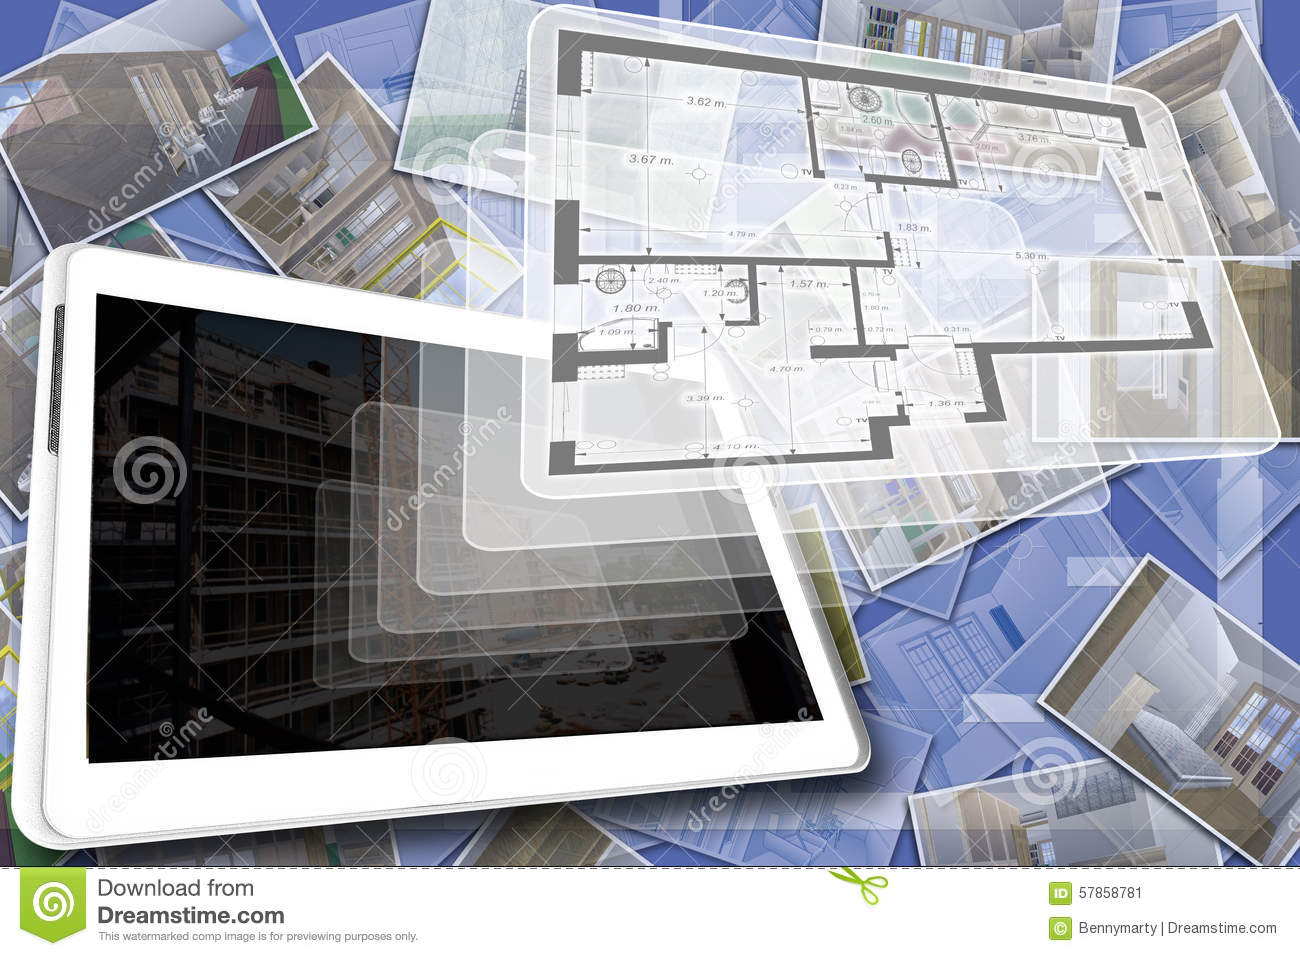 House plan stock illustration image 57858781 for Digital house design